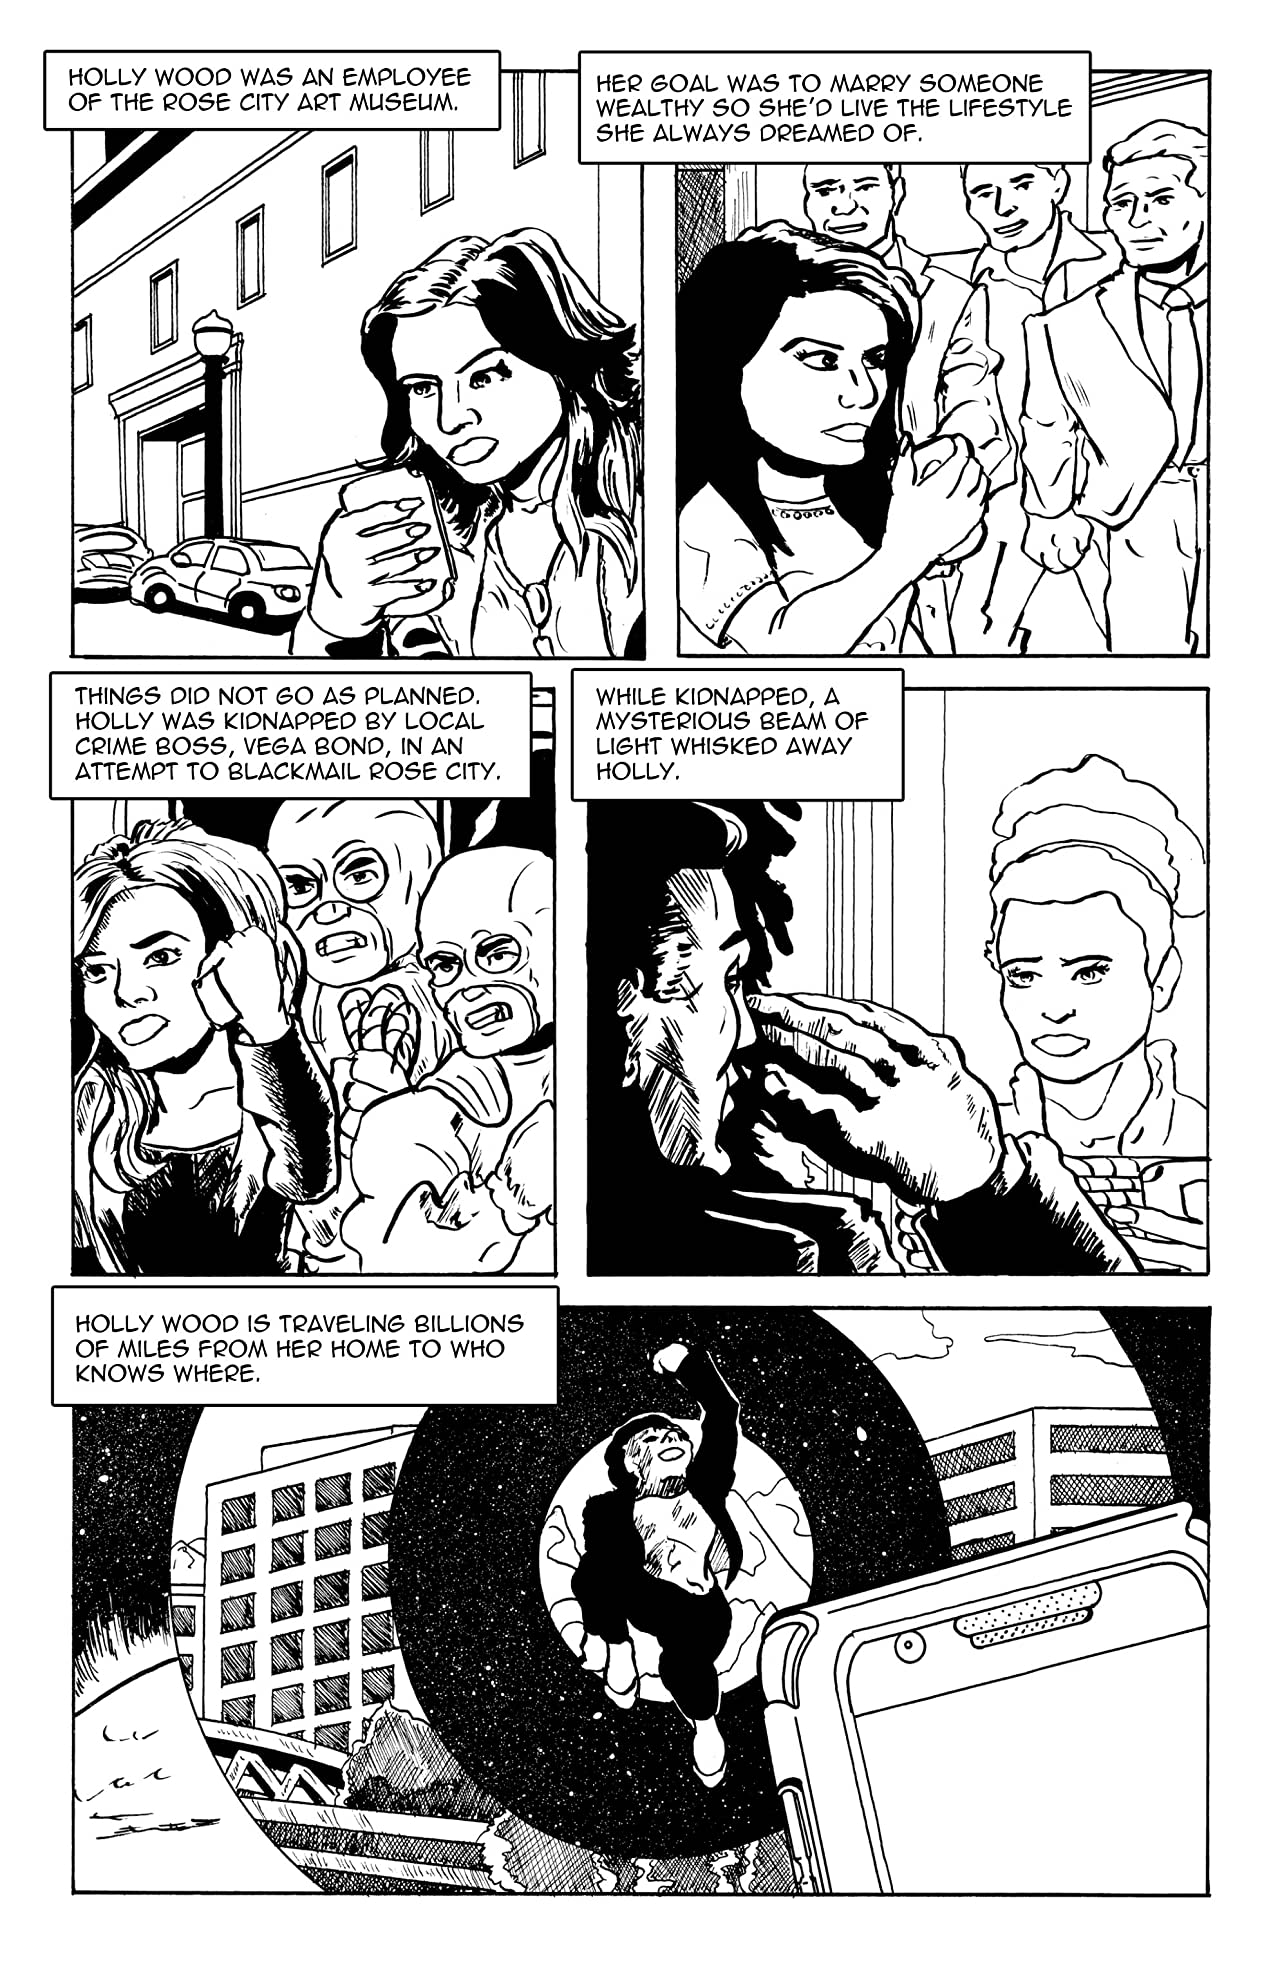 Holly Wood: Space Diva #1